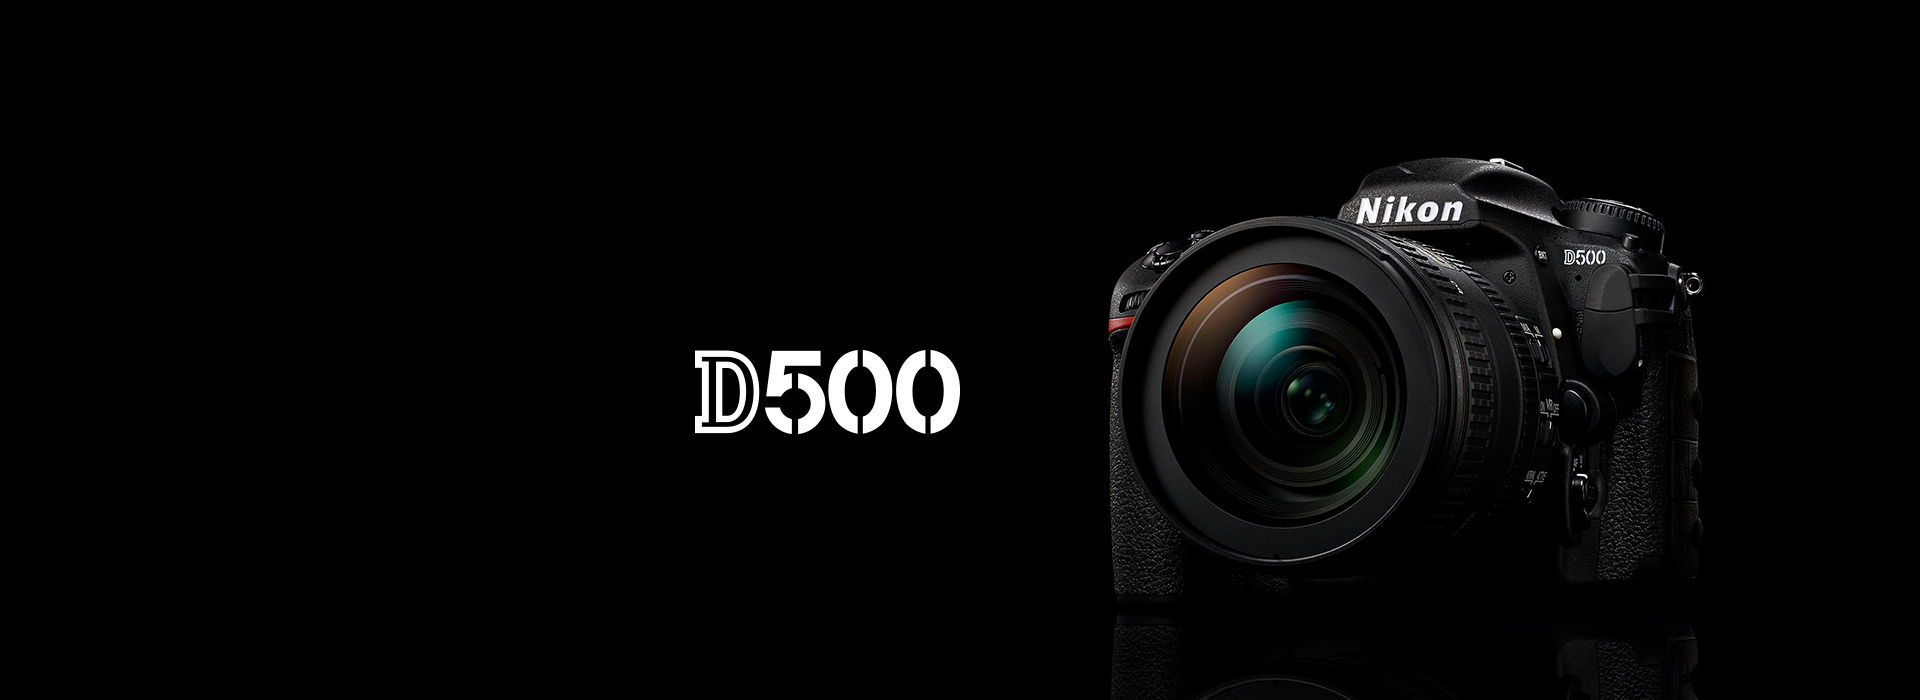 Nikon D500 | DSLR Camera | Body, Specs, Kits & Accessories | UK